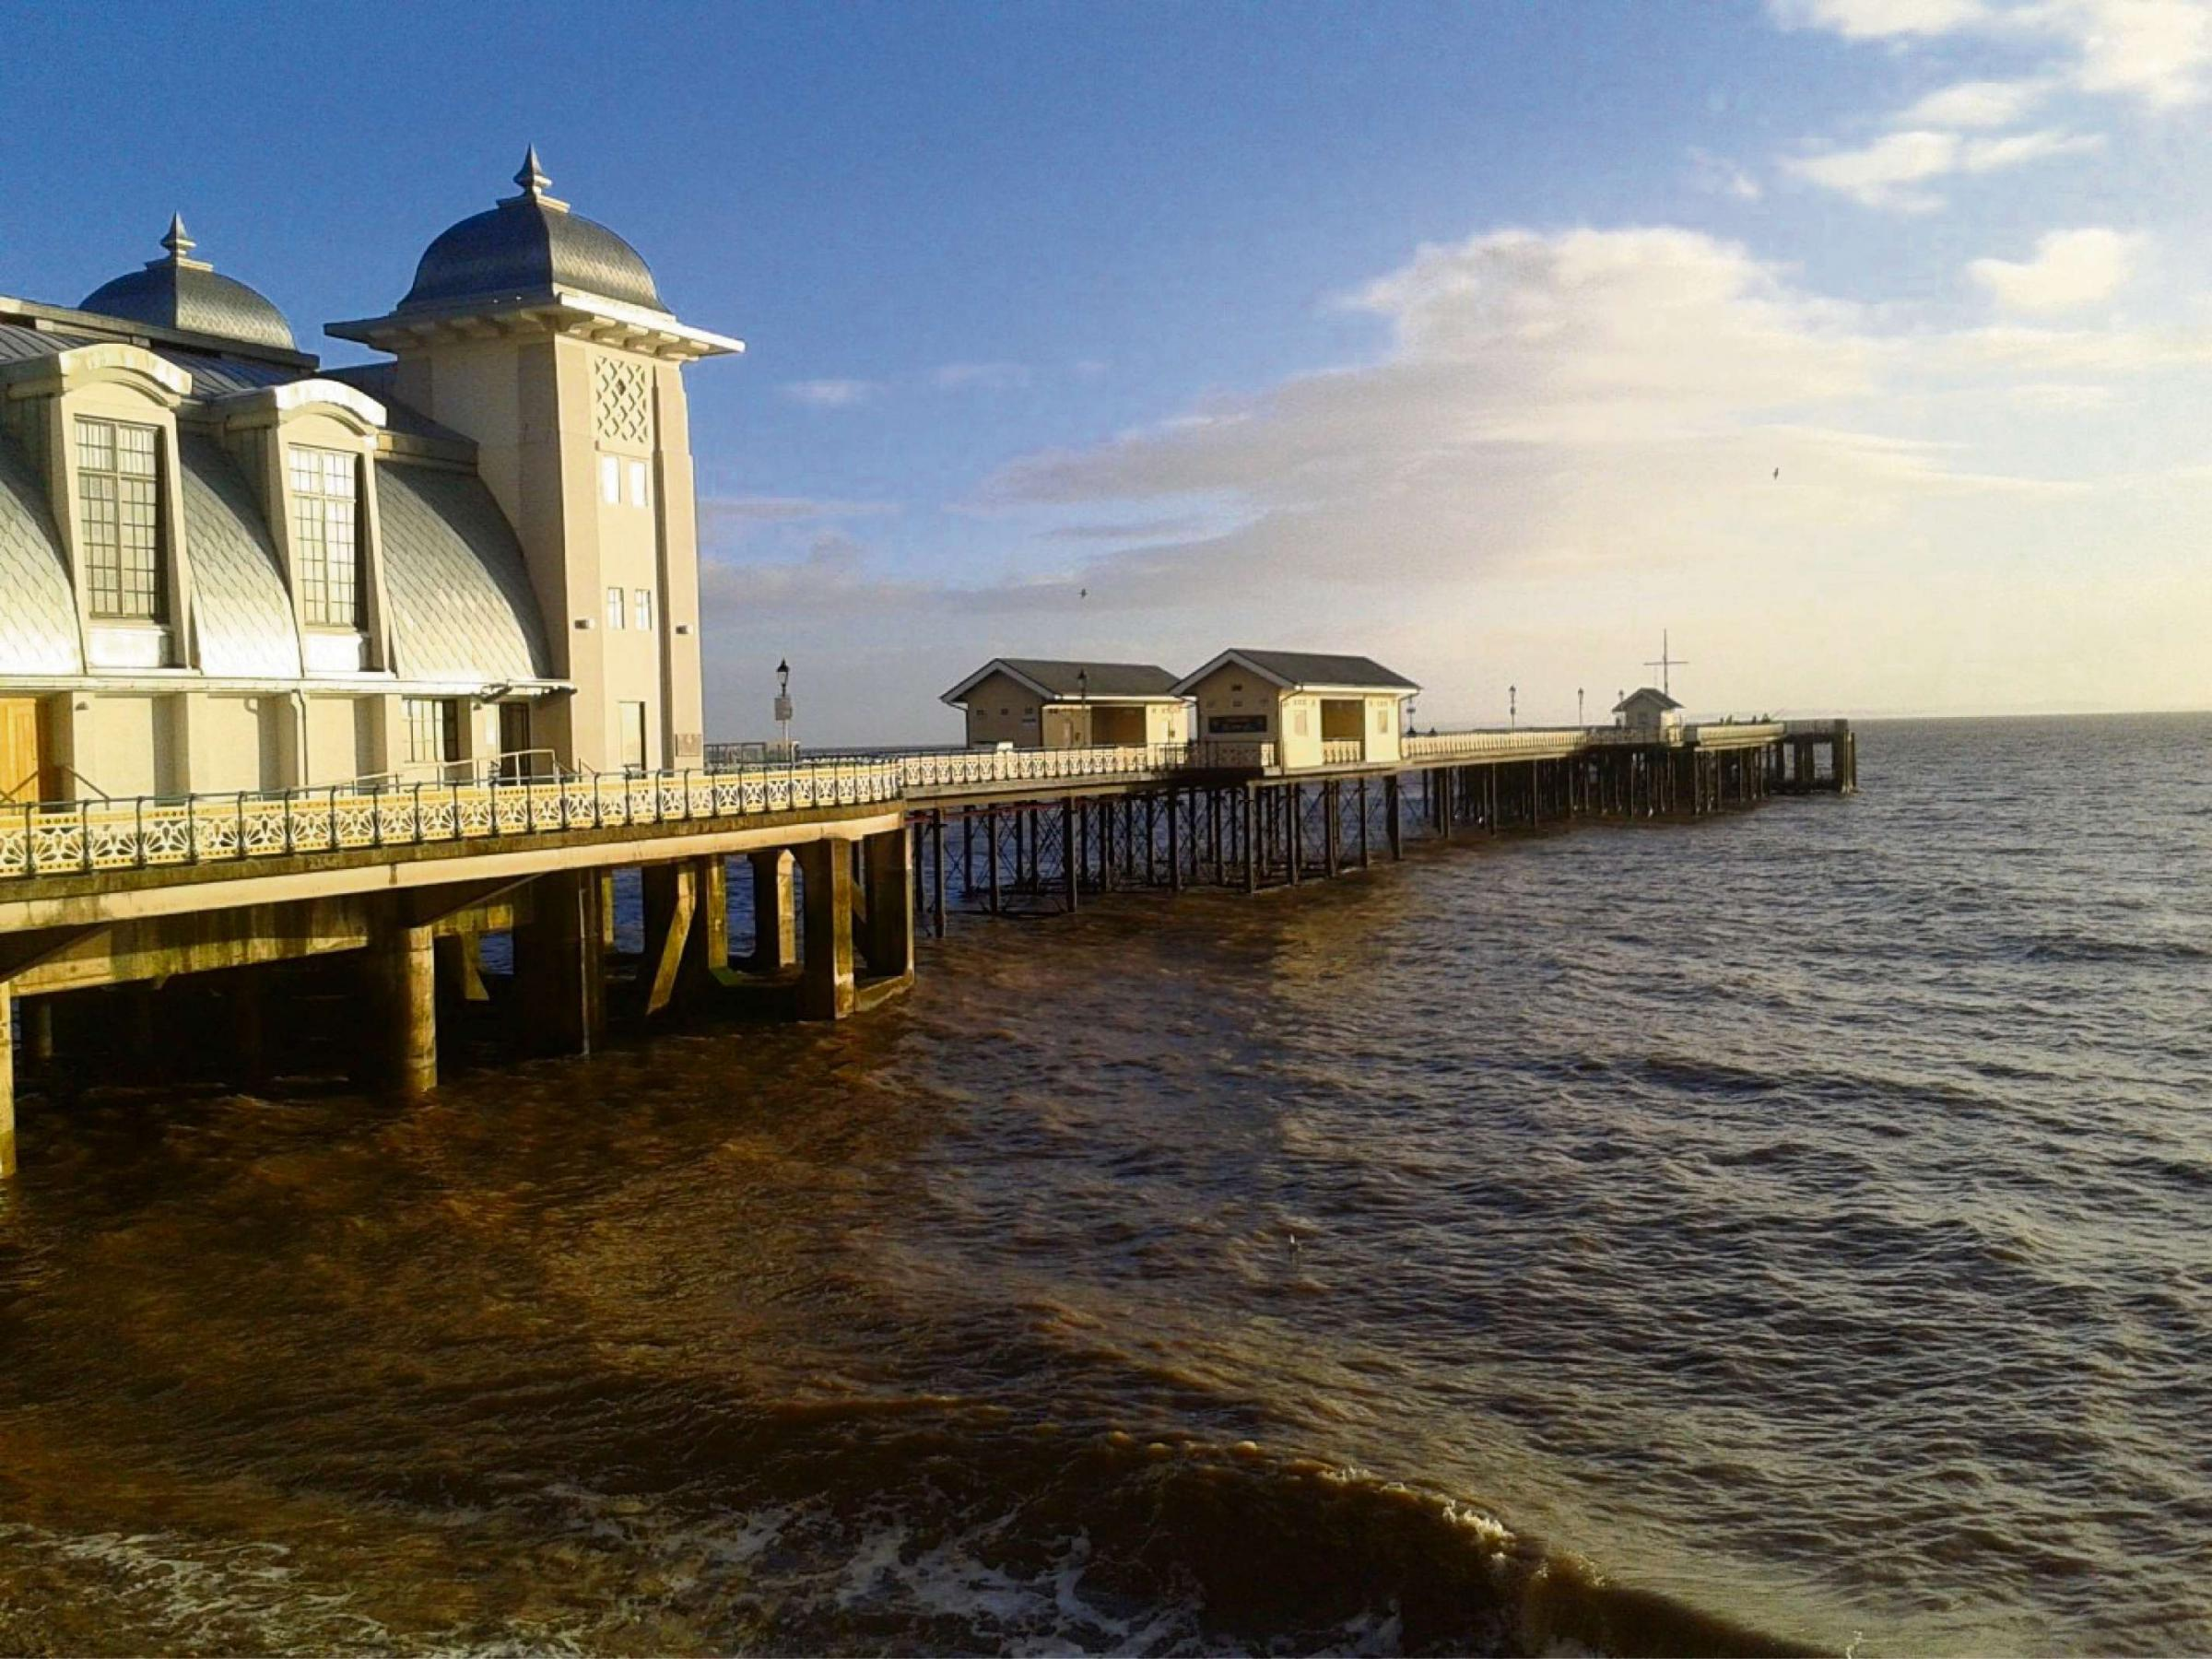 Summer sailings to return to Penarth Pier